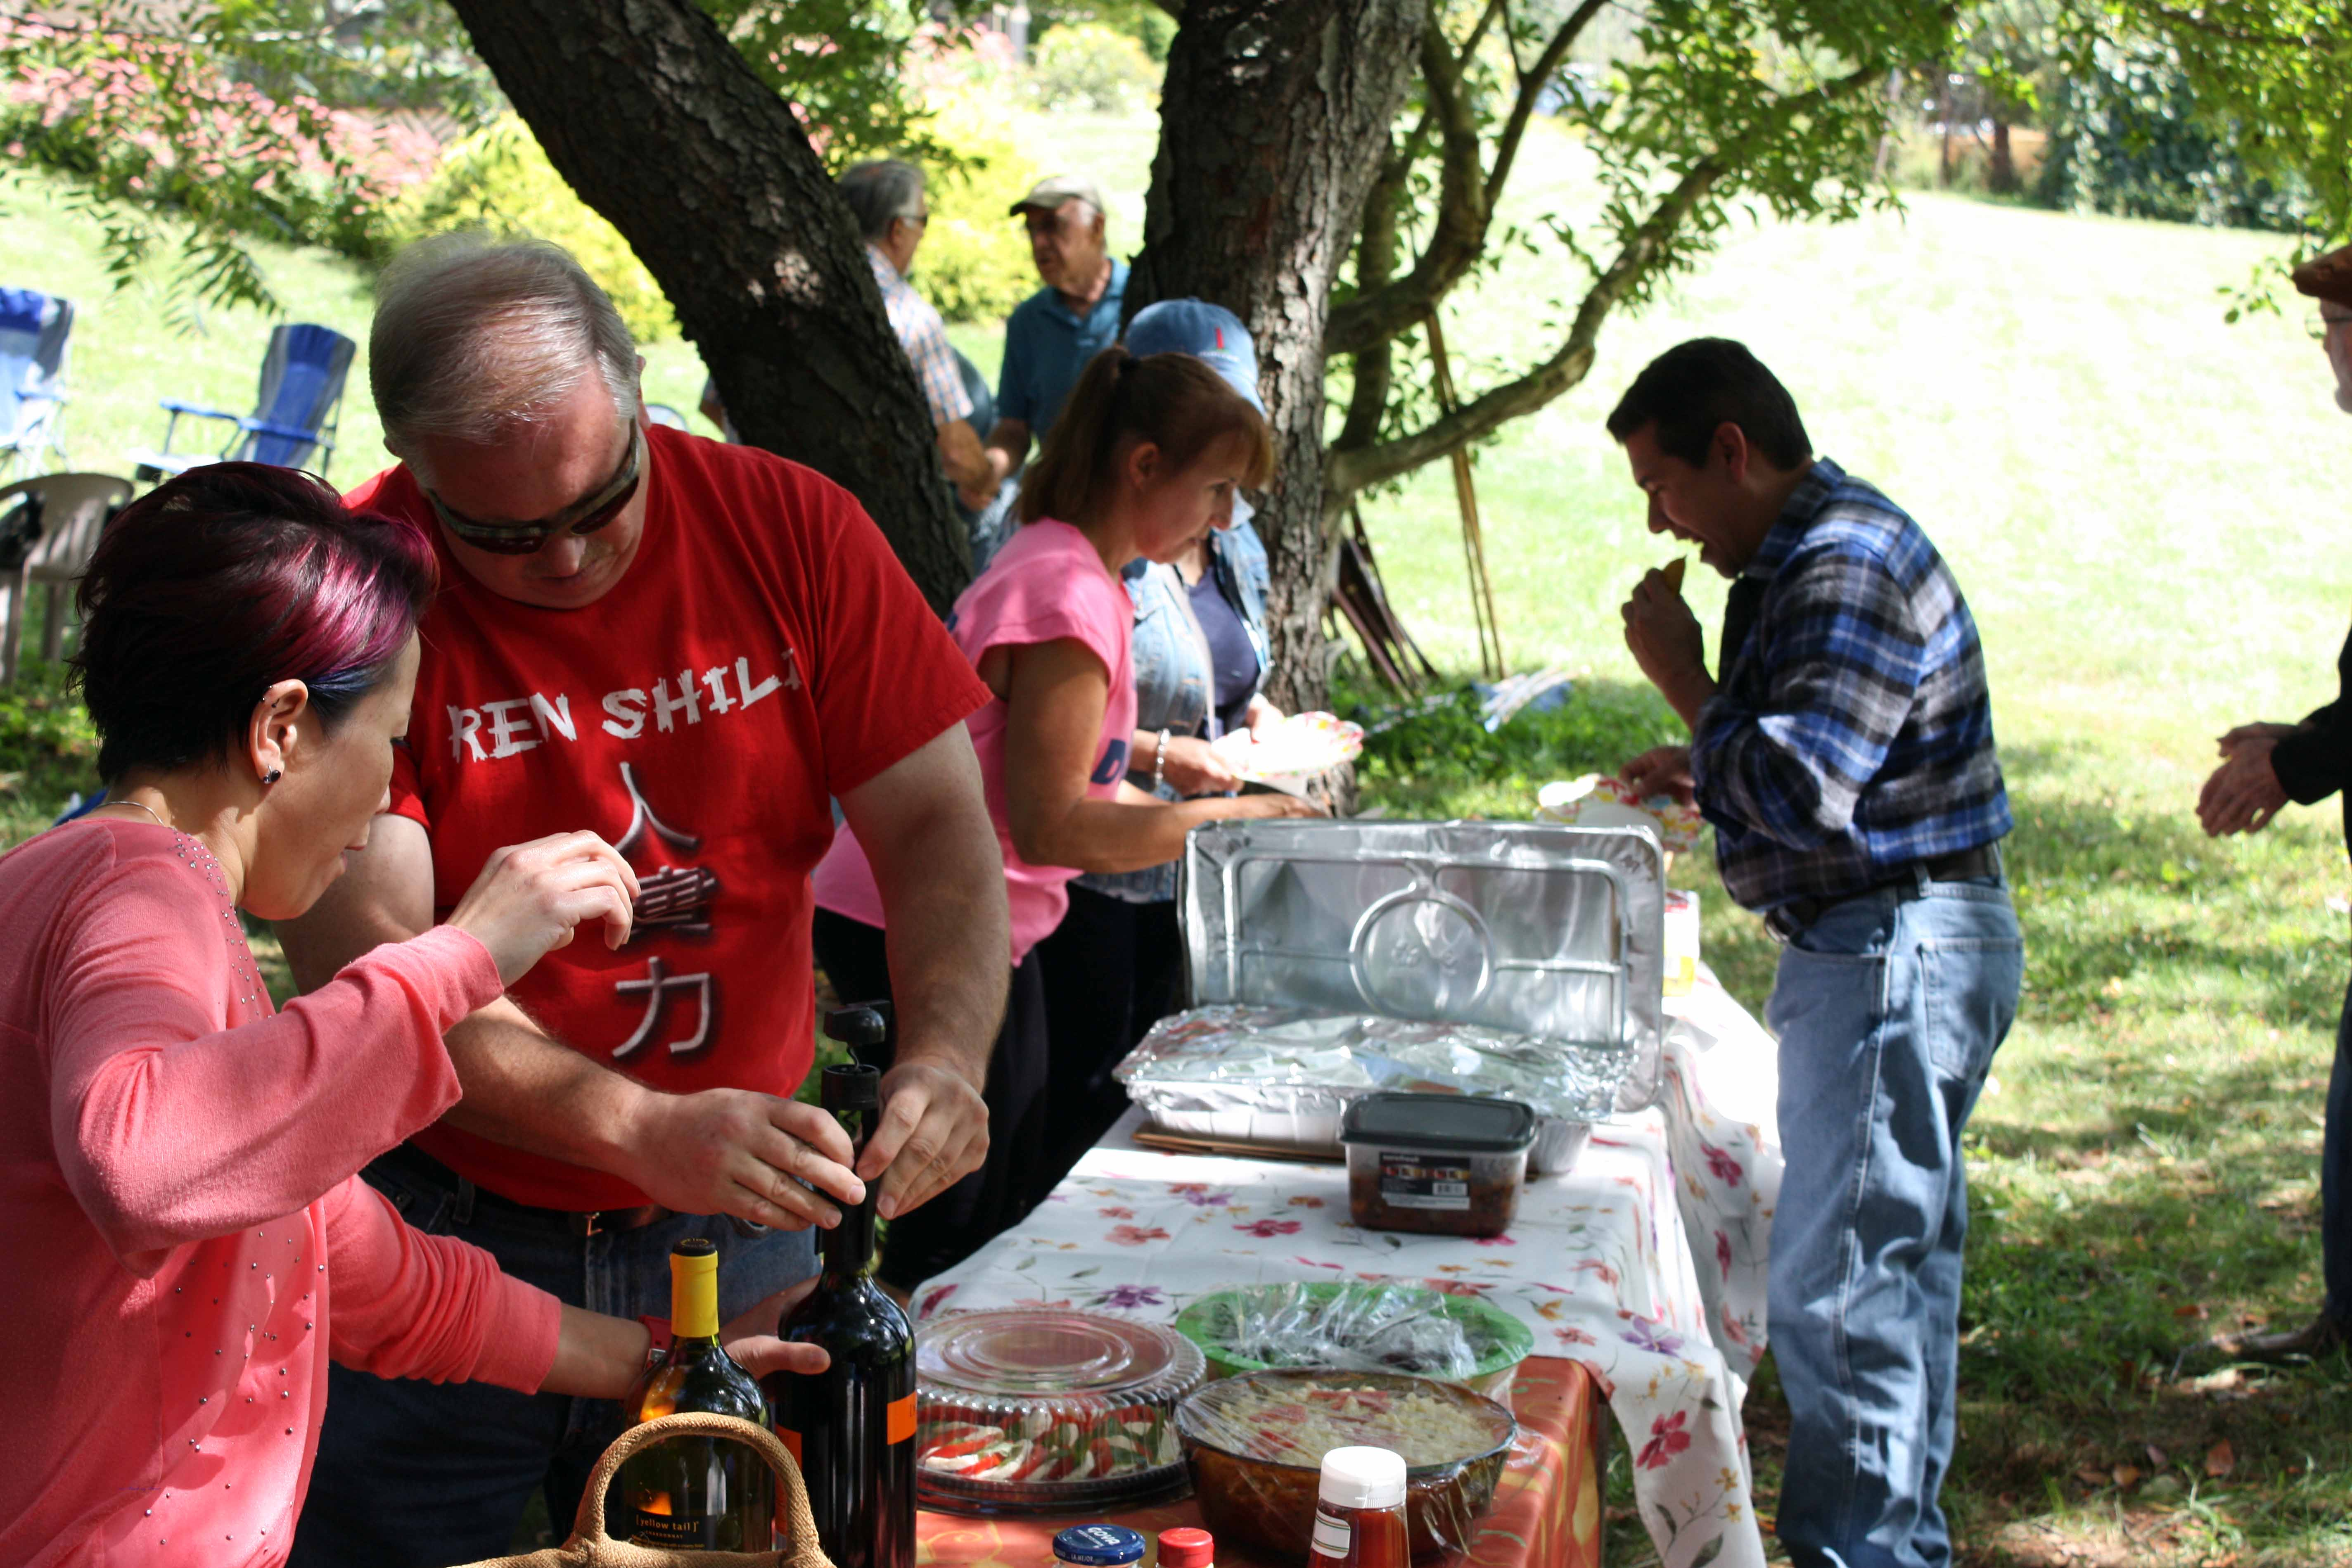 u.9414.2014 blueberry picnic007.jpg